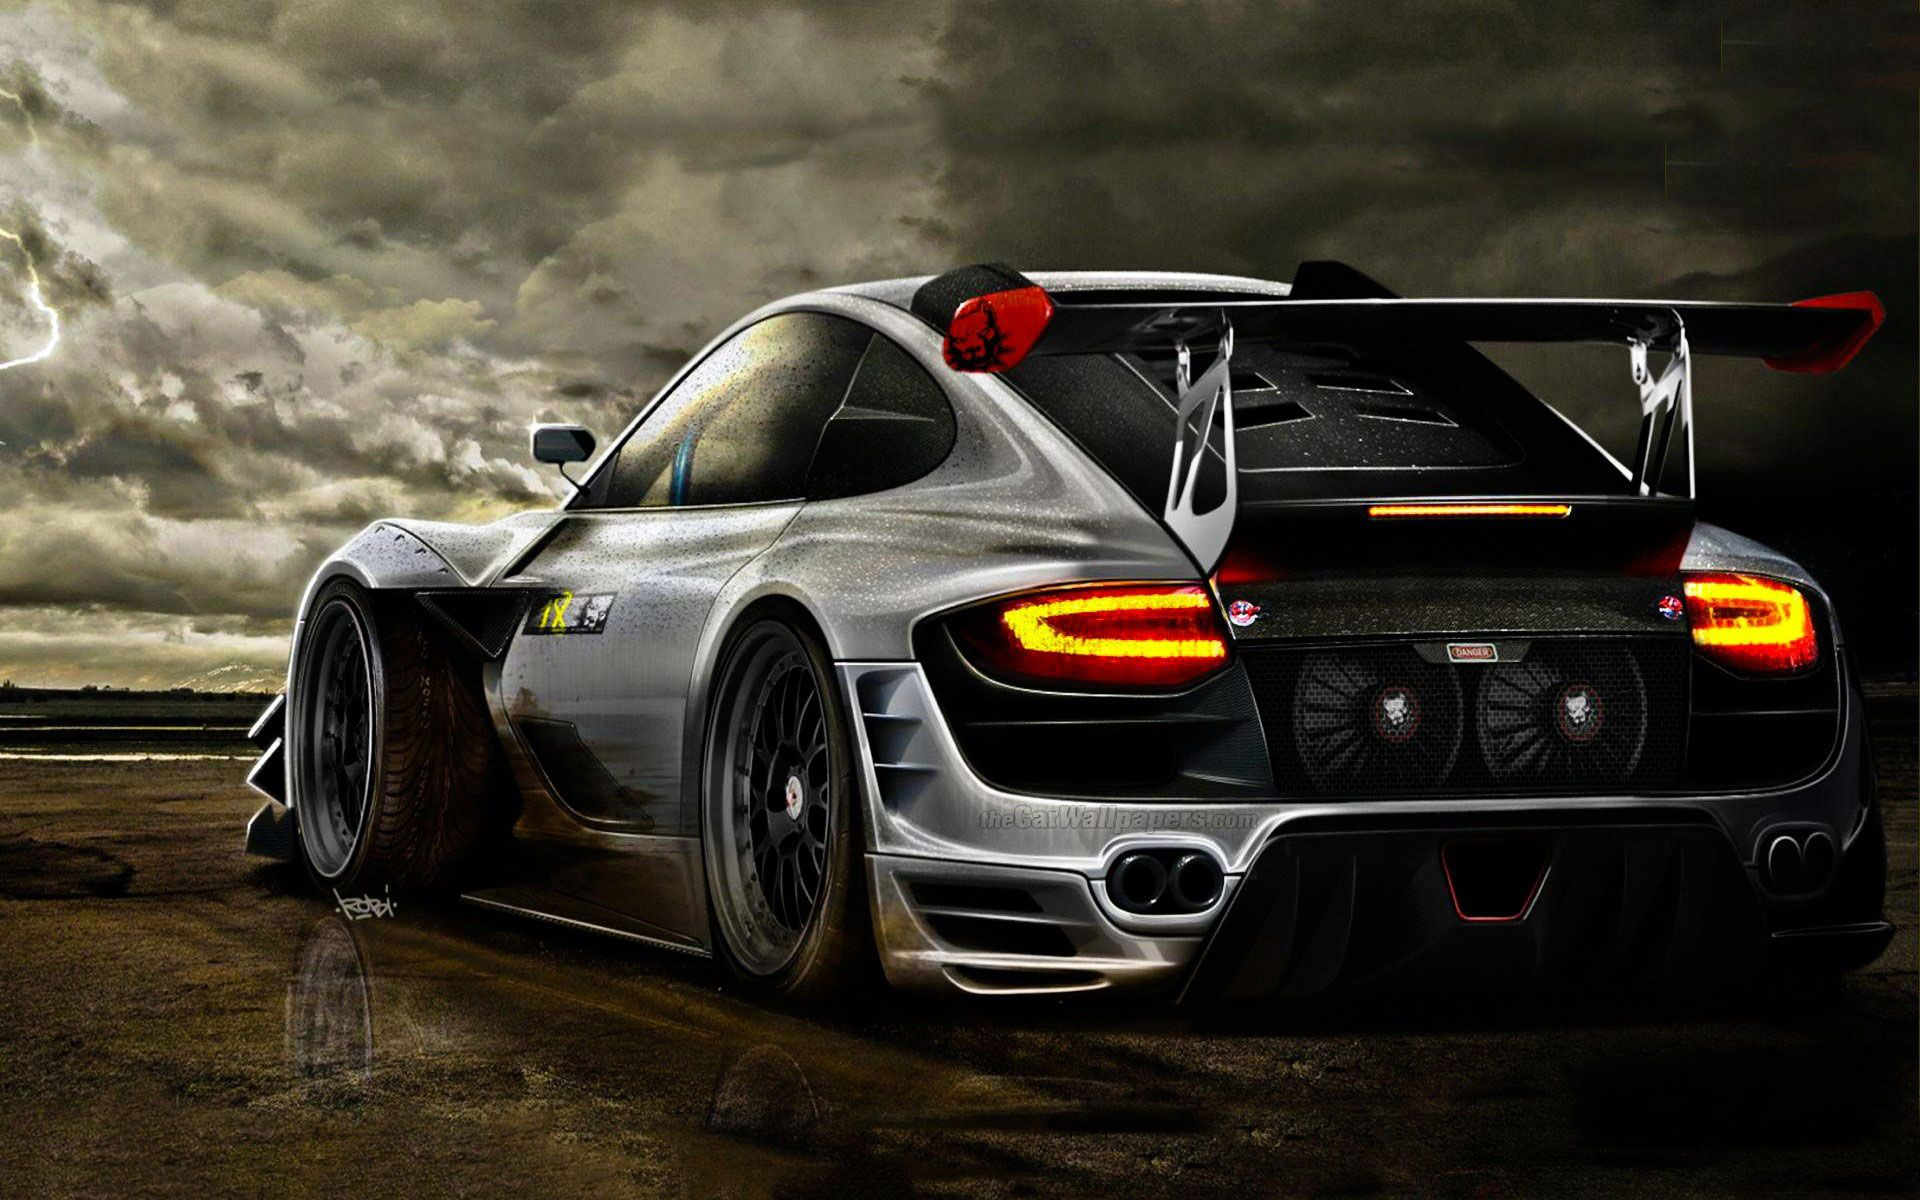 Cool Cars Hd Wallpapers In Wallpaper XPX With